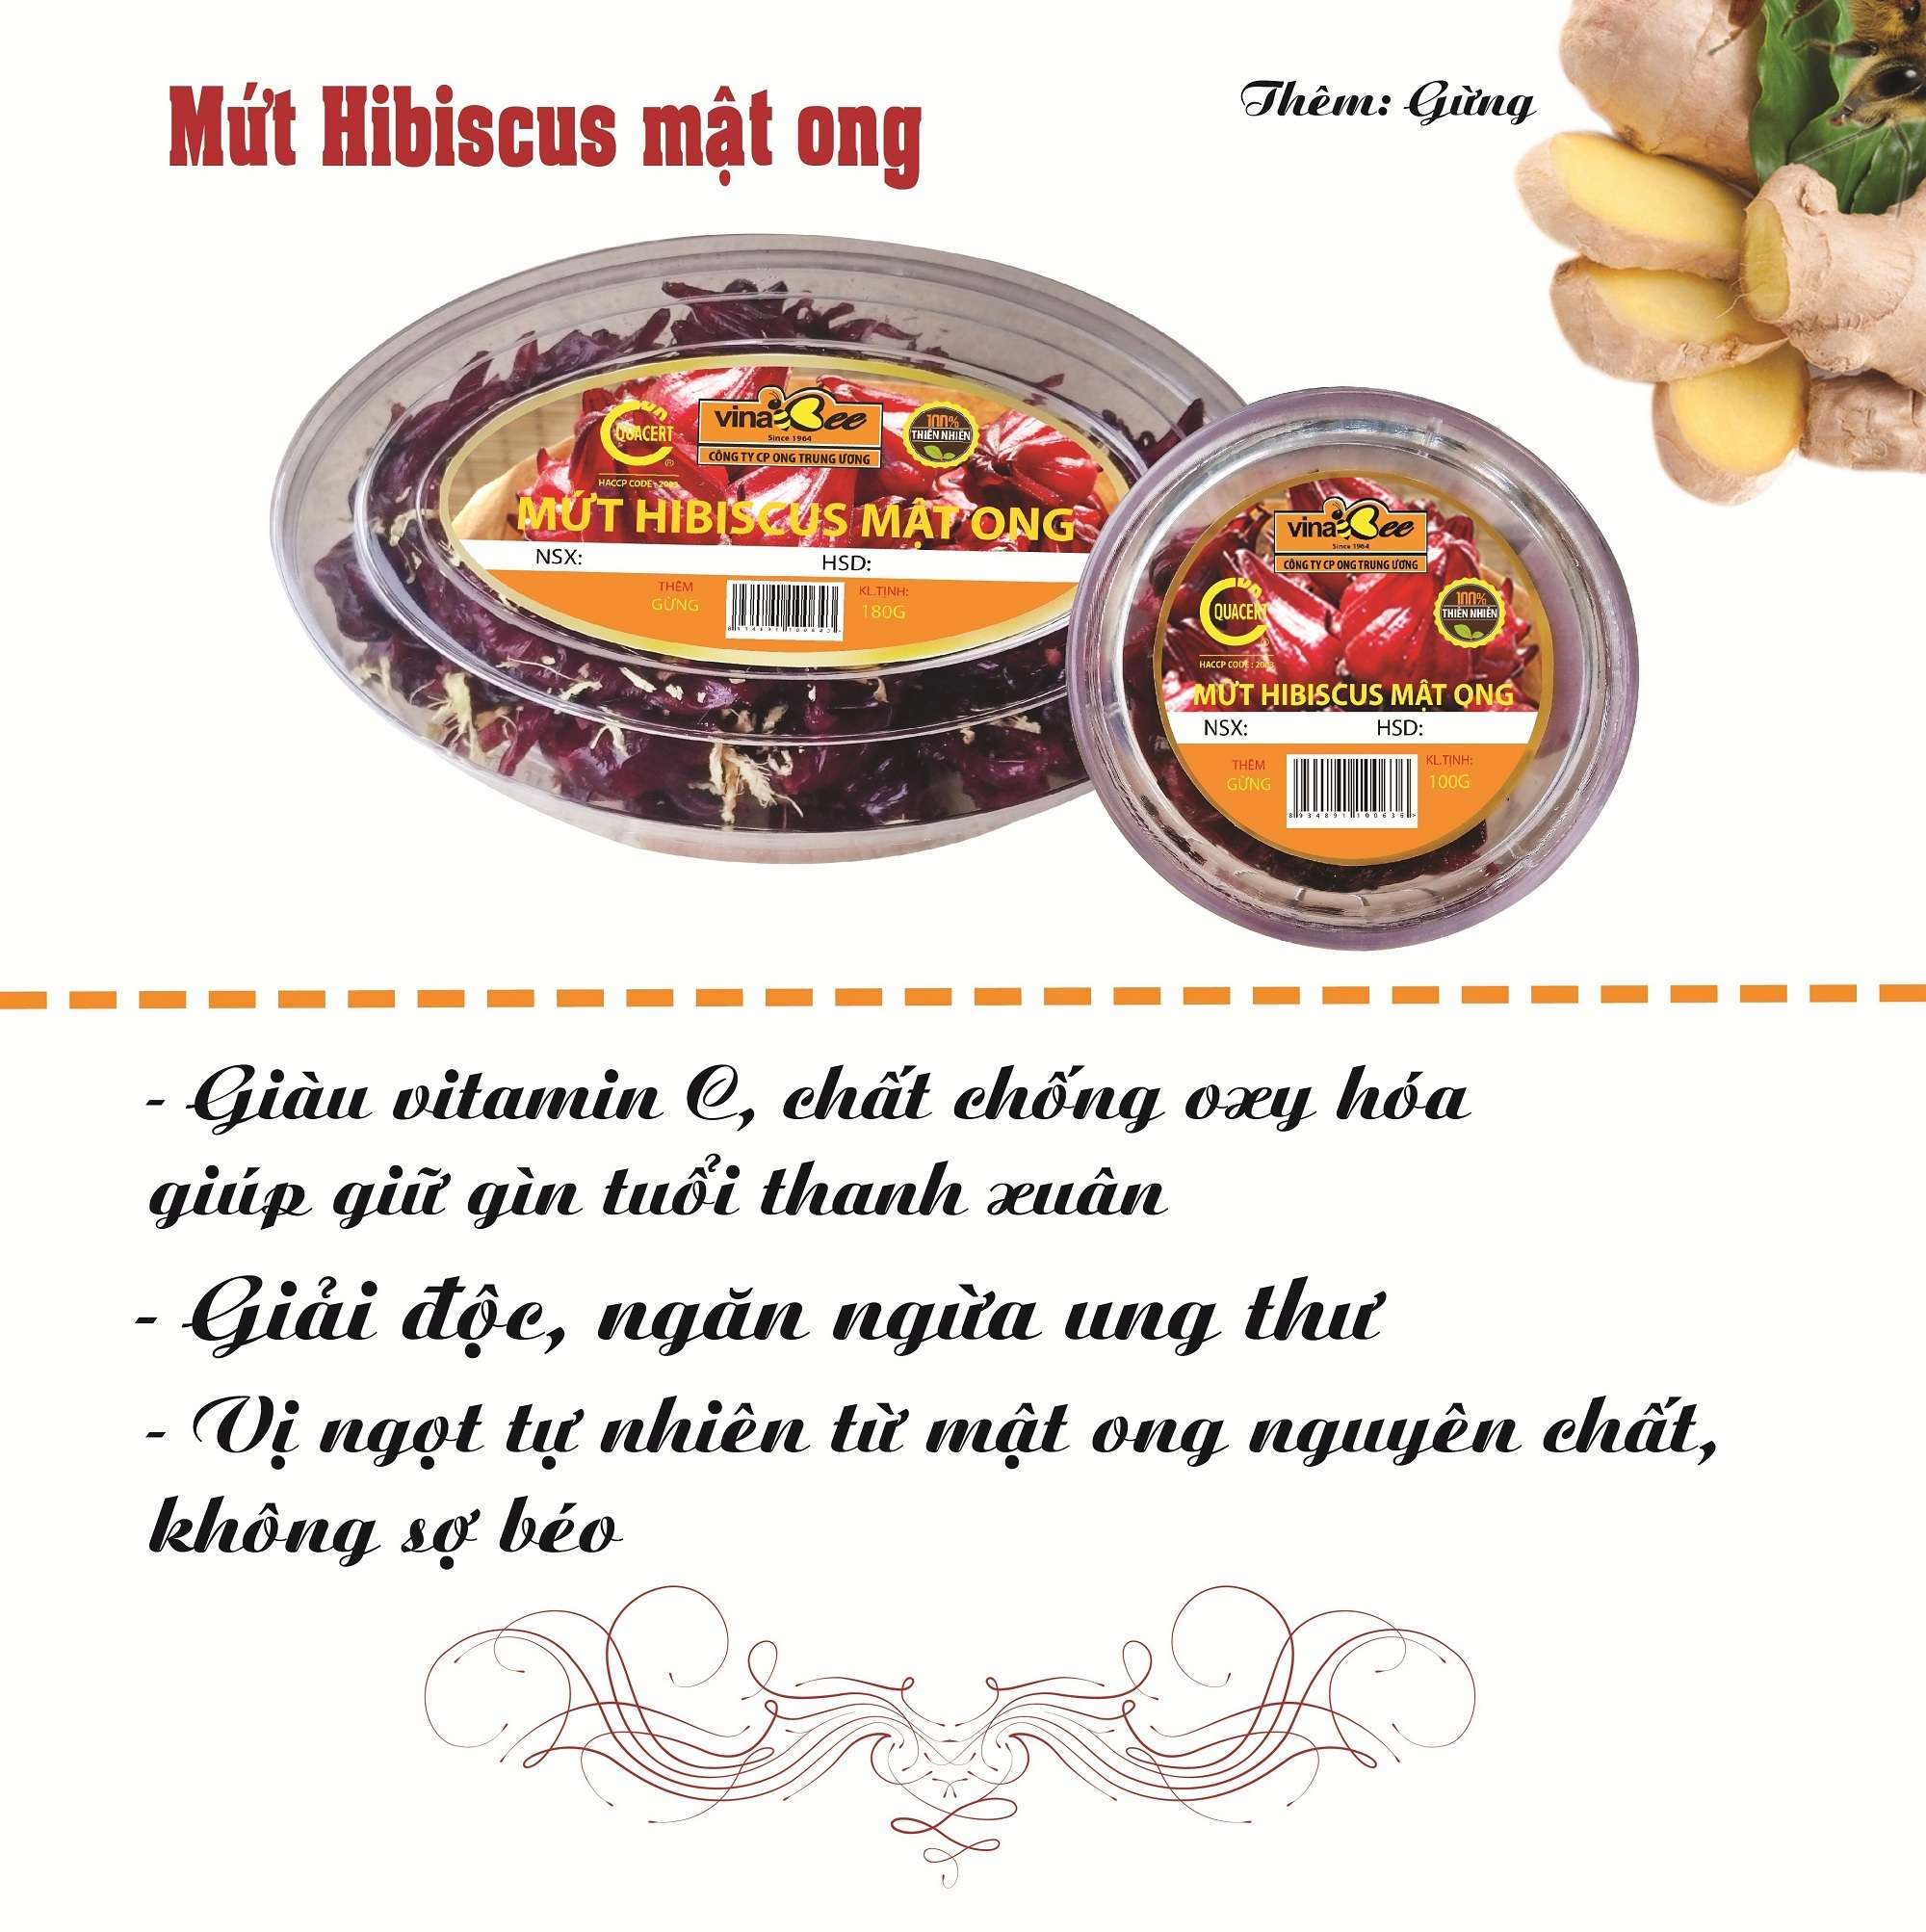 mứt hibiscus mật ong vinabee 3